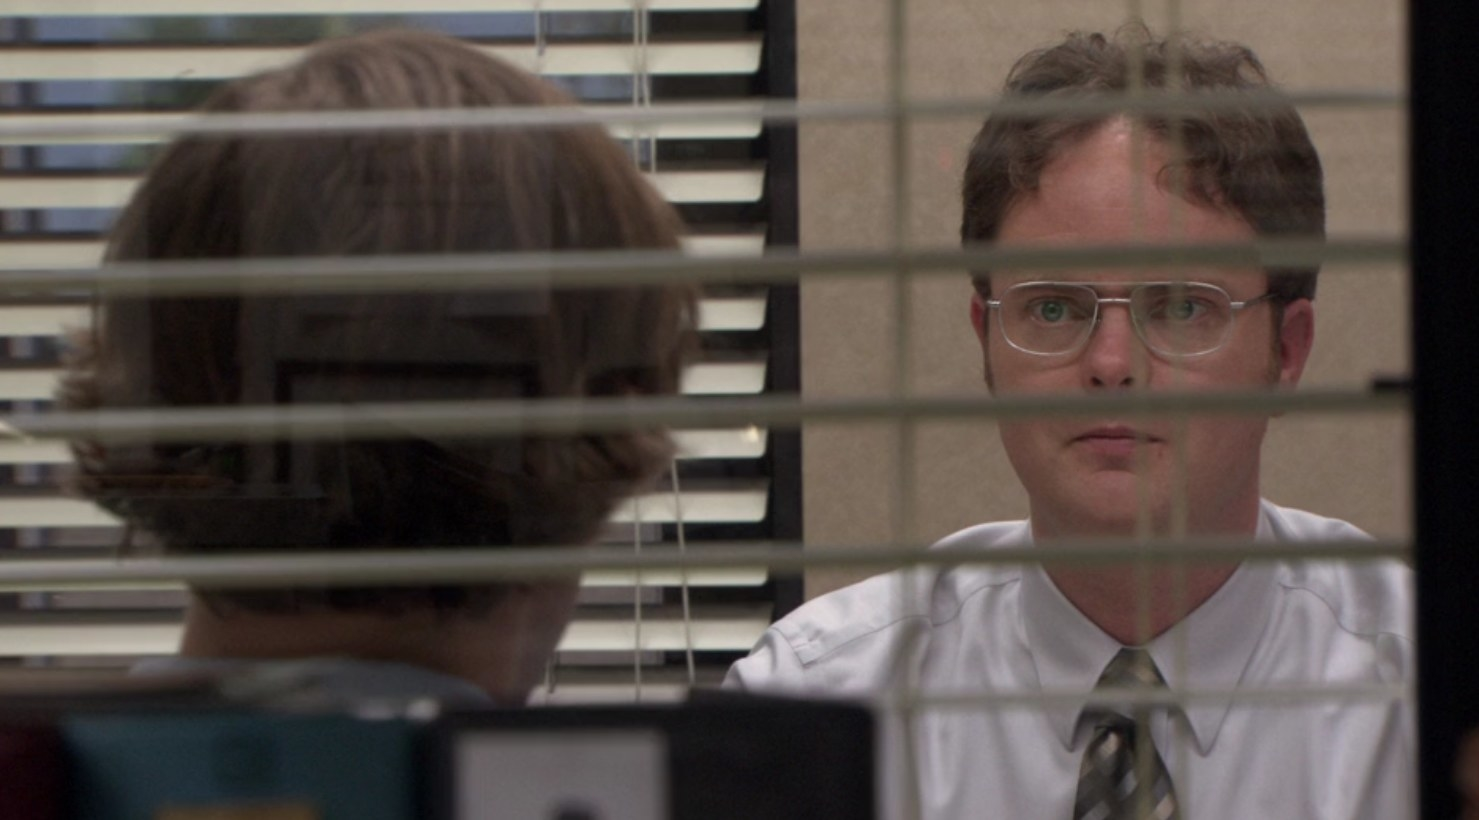 Through a window in the office, we see Jim facing an angry Dwight